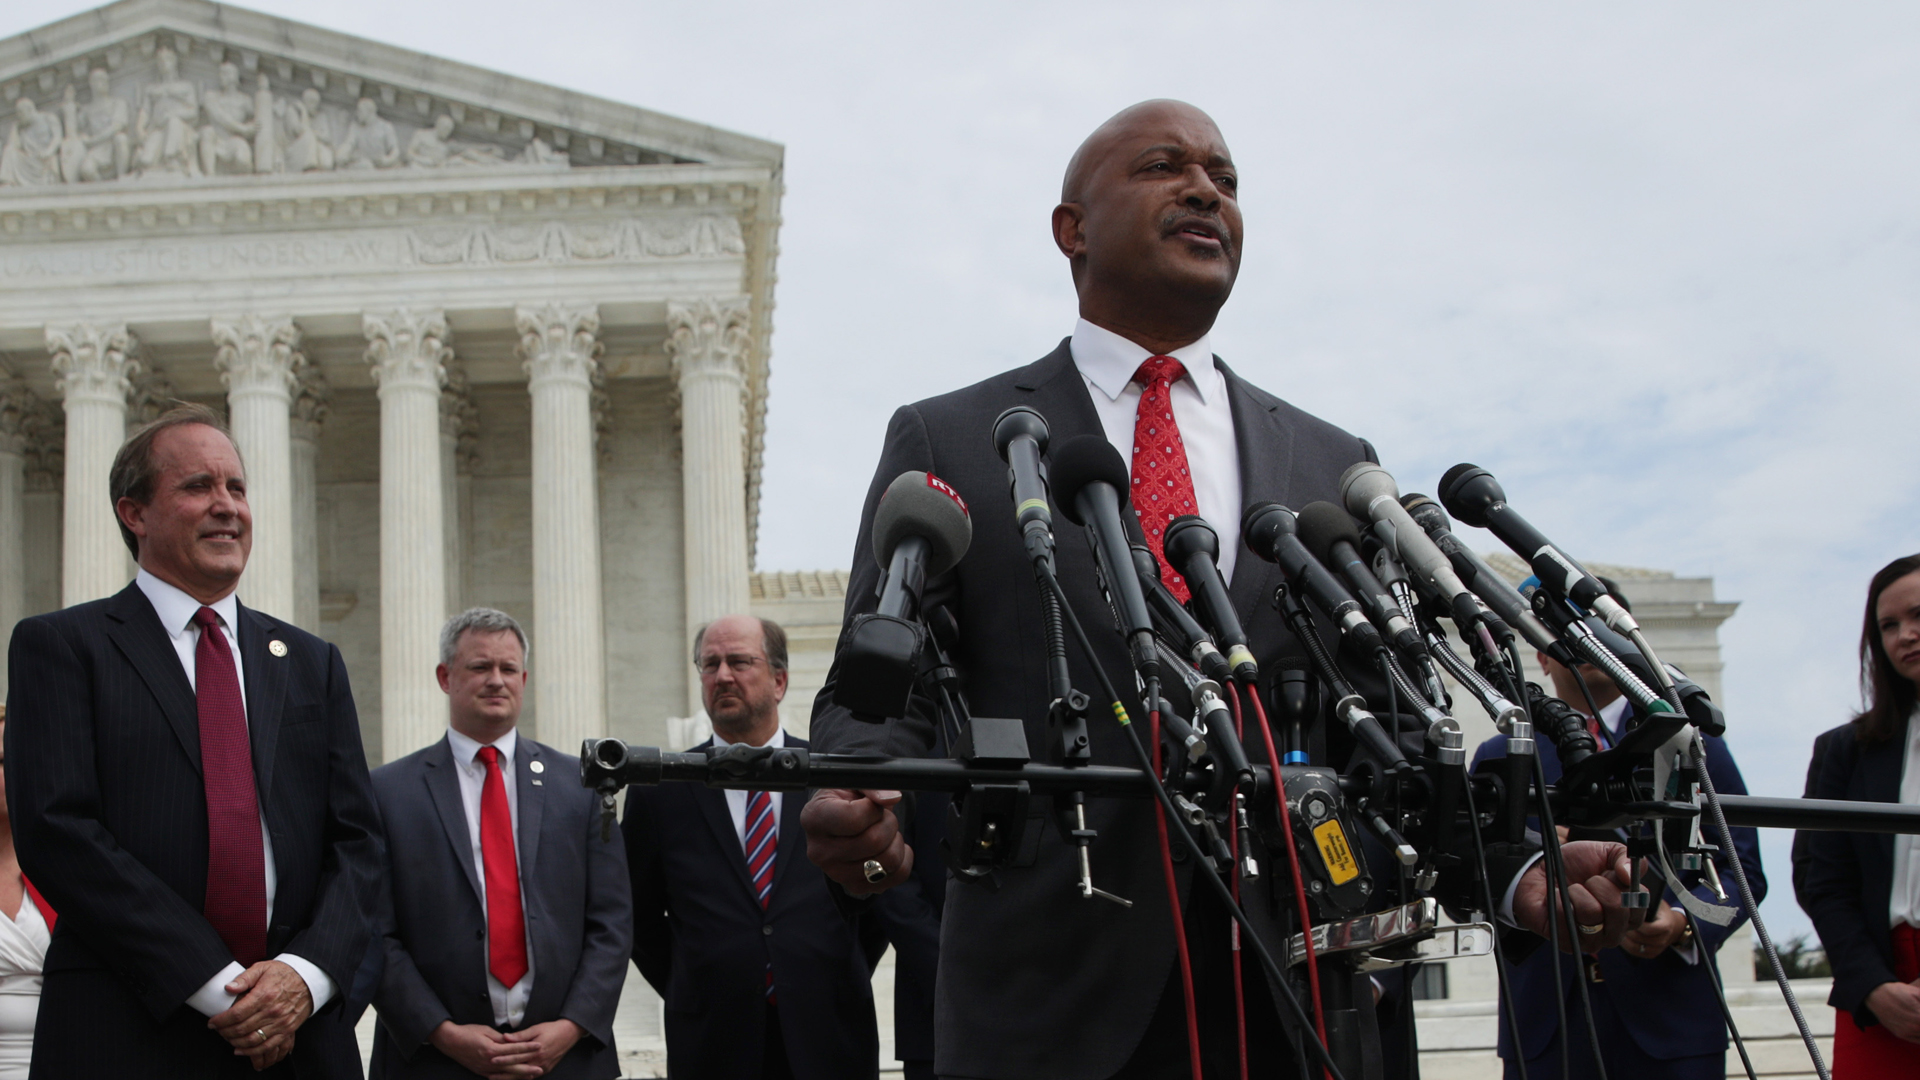 Indiana Attorney General Curtis Hill speaks as Washington, D.C. Attorney General Karl Racine (L) and Texas Attorney General Ken Paxton (2nd L) listen during a news conference in front of the U.S. Supreme Court Sept. 9, 2019, in Washington, D.C. (Credit: Alex Wong/Getty Images)